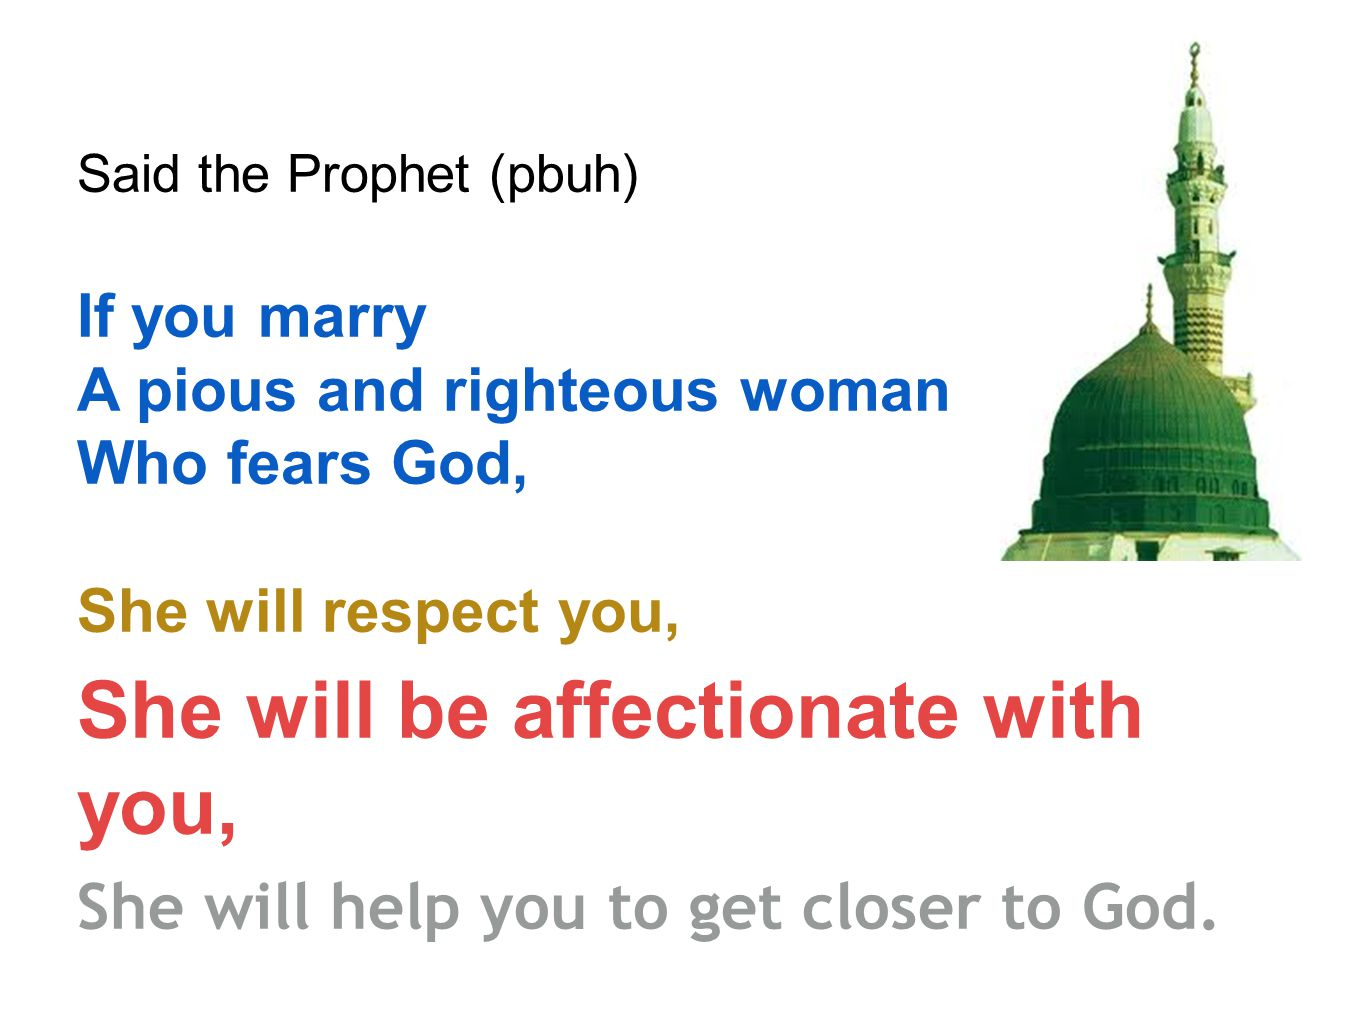 She will be affectionate with you,